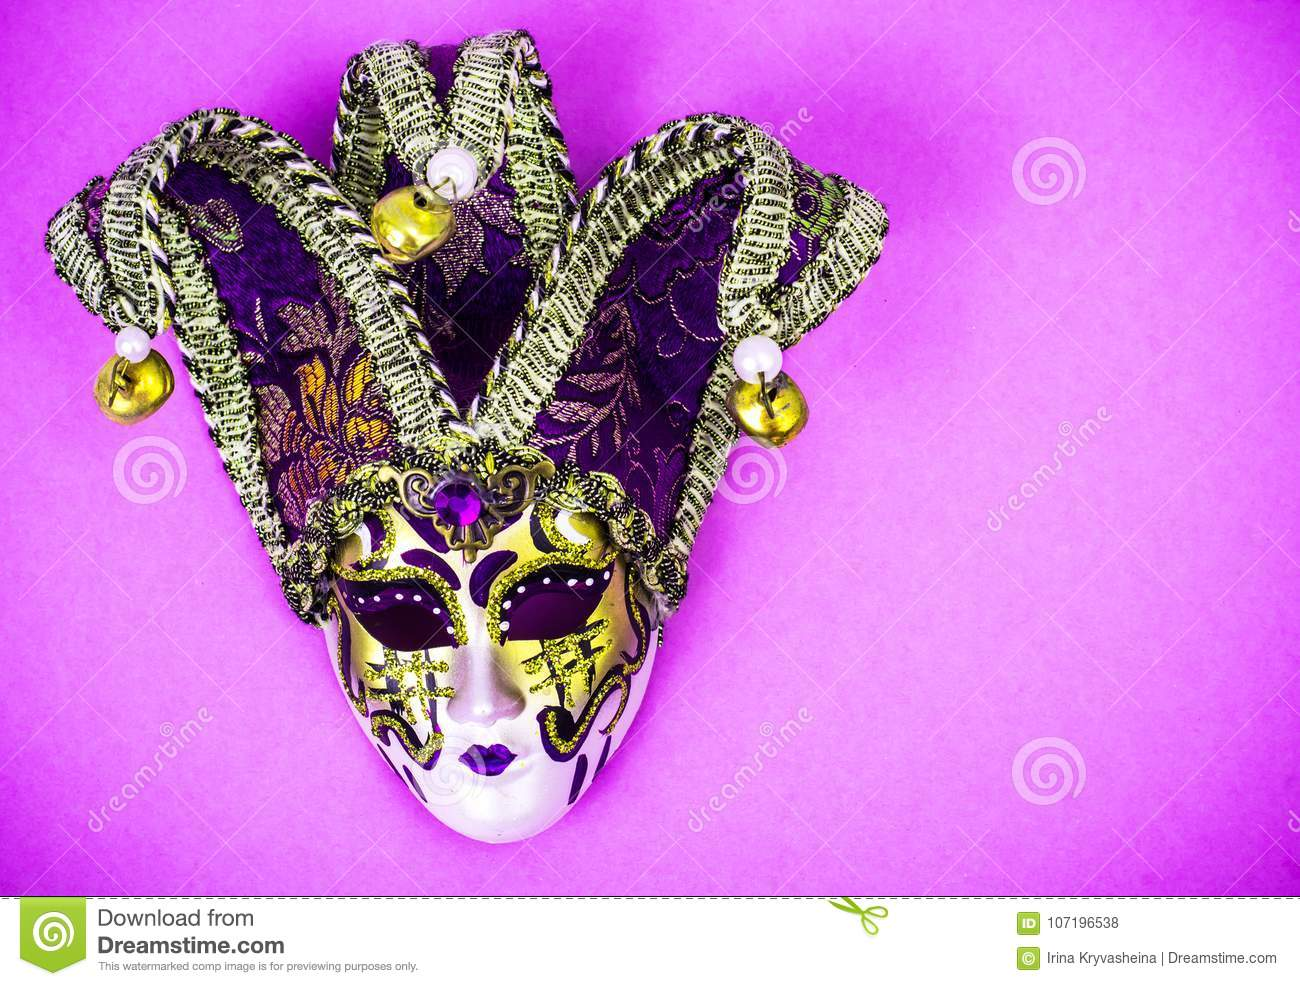 82cbf74e5802 Royalty-Free Stock Photo. Mardi Gras Festival. Luxurious masquerade  Venetian carnival mask on purple background